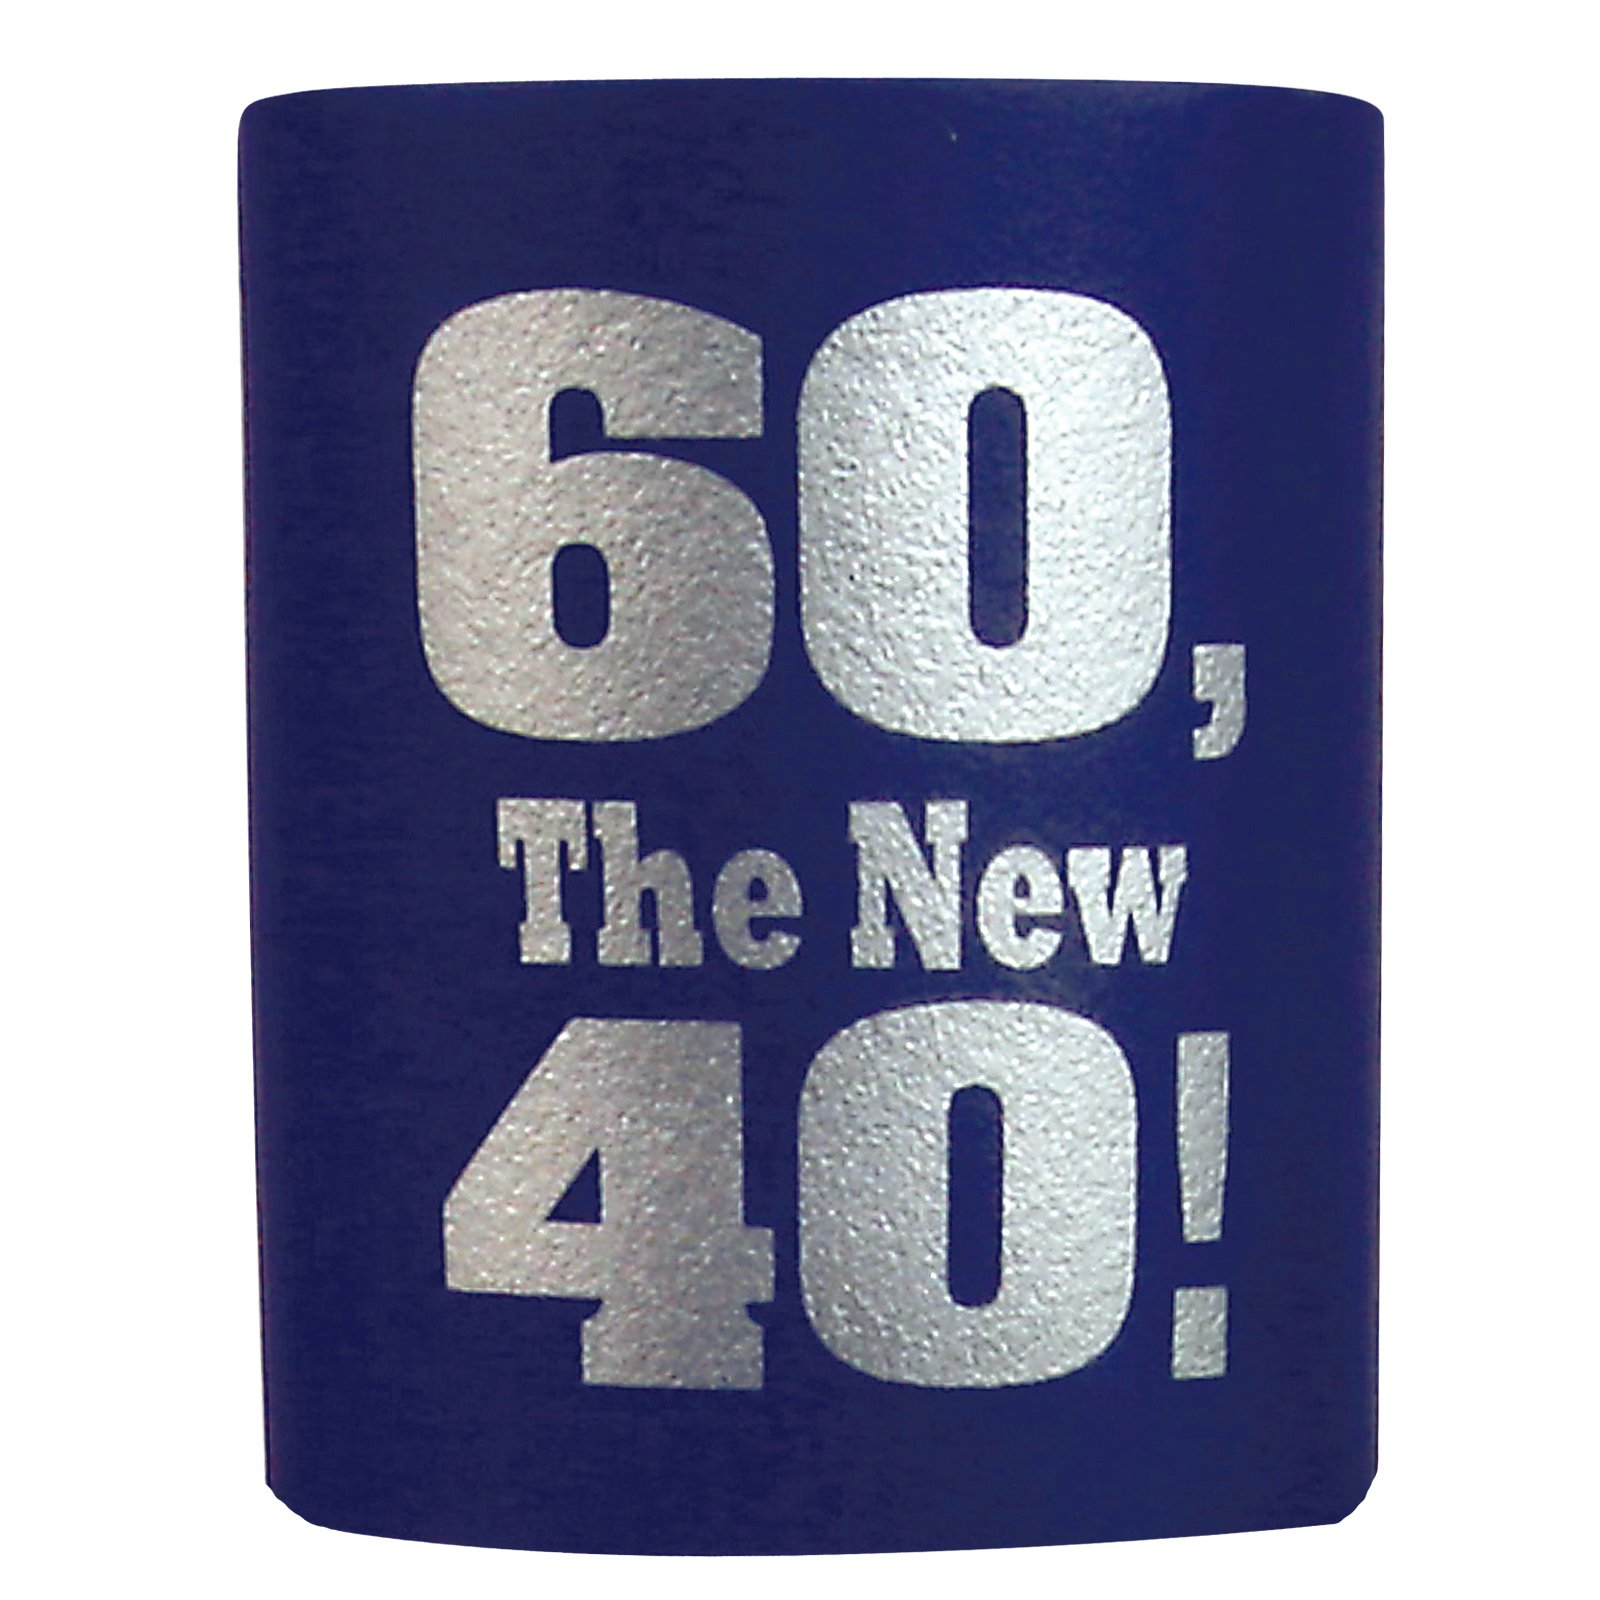 Over the Hill Beer Koozie - 60 is the new 40